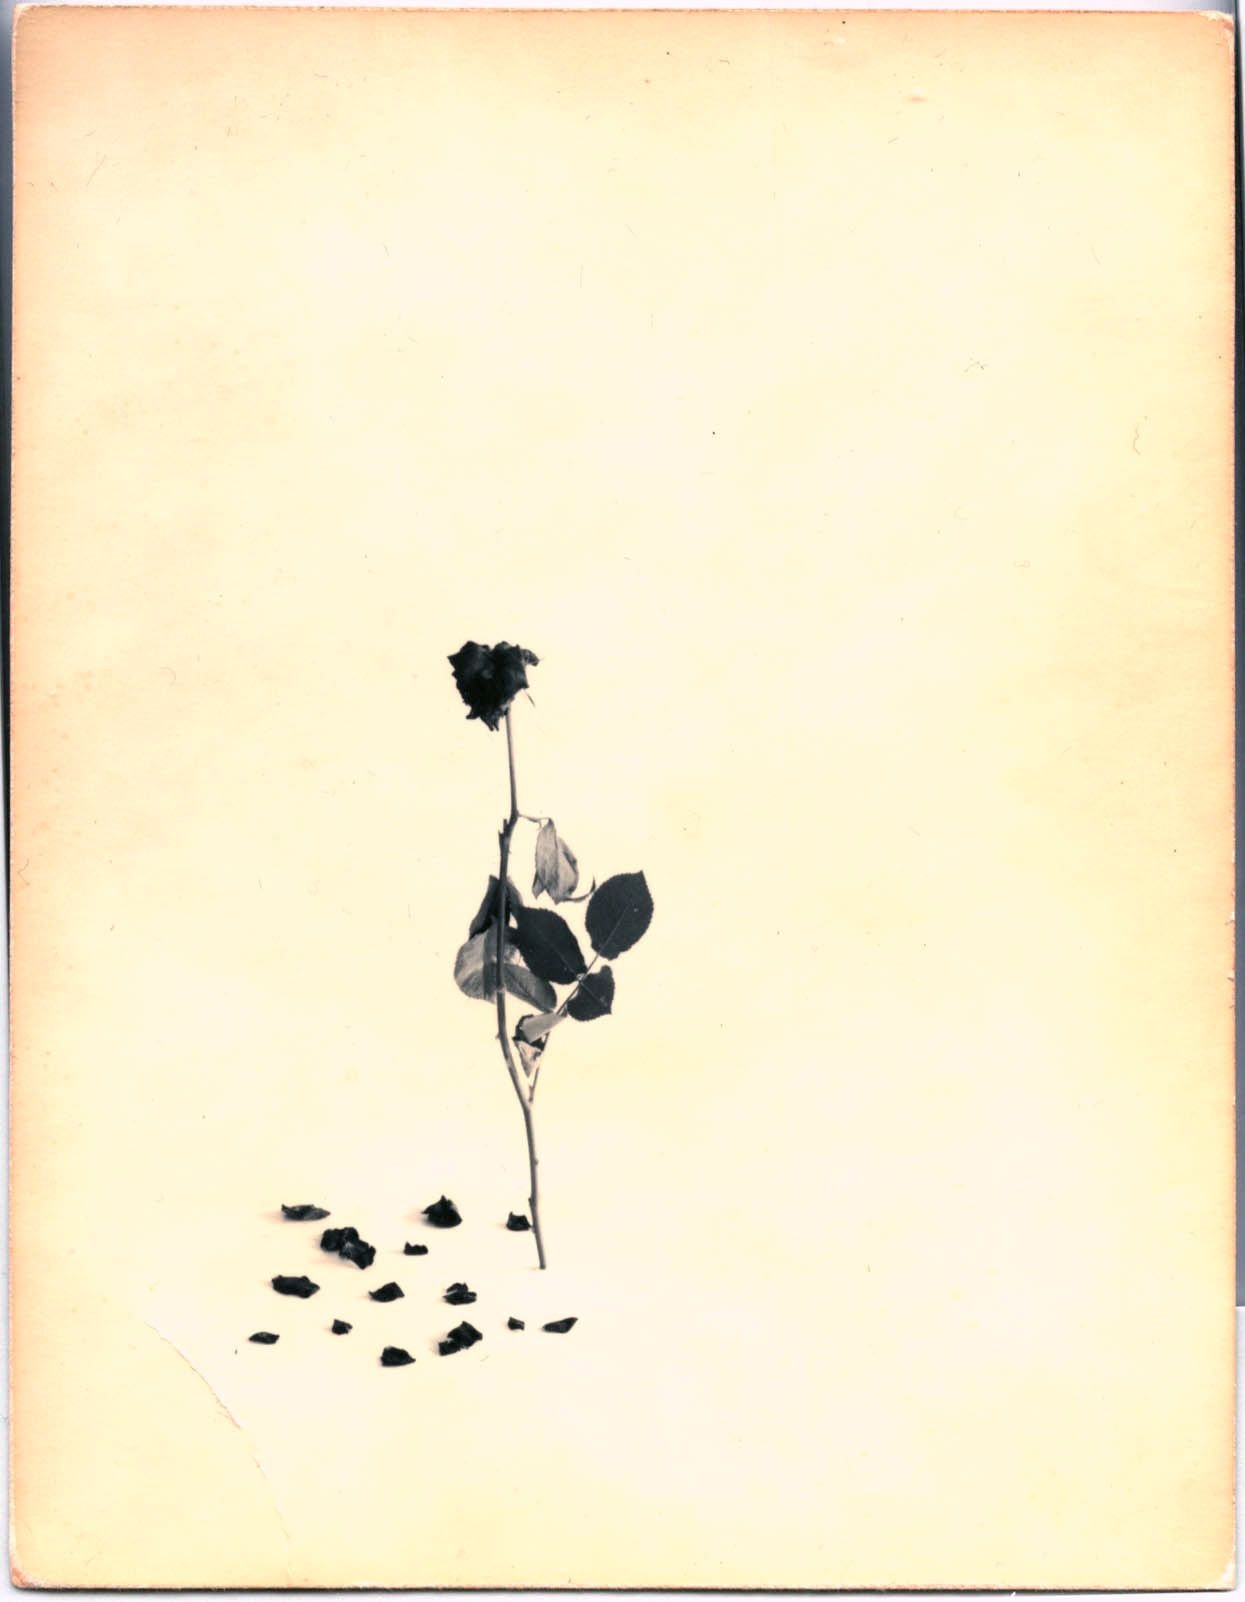 Masao Yamamoto,Untitled #44from the seriesA Box of Ku. Hand-toned gelatin silver print with paint,, 5 1/4 x 4 1/4 inches.